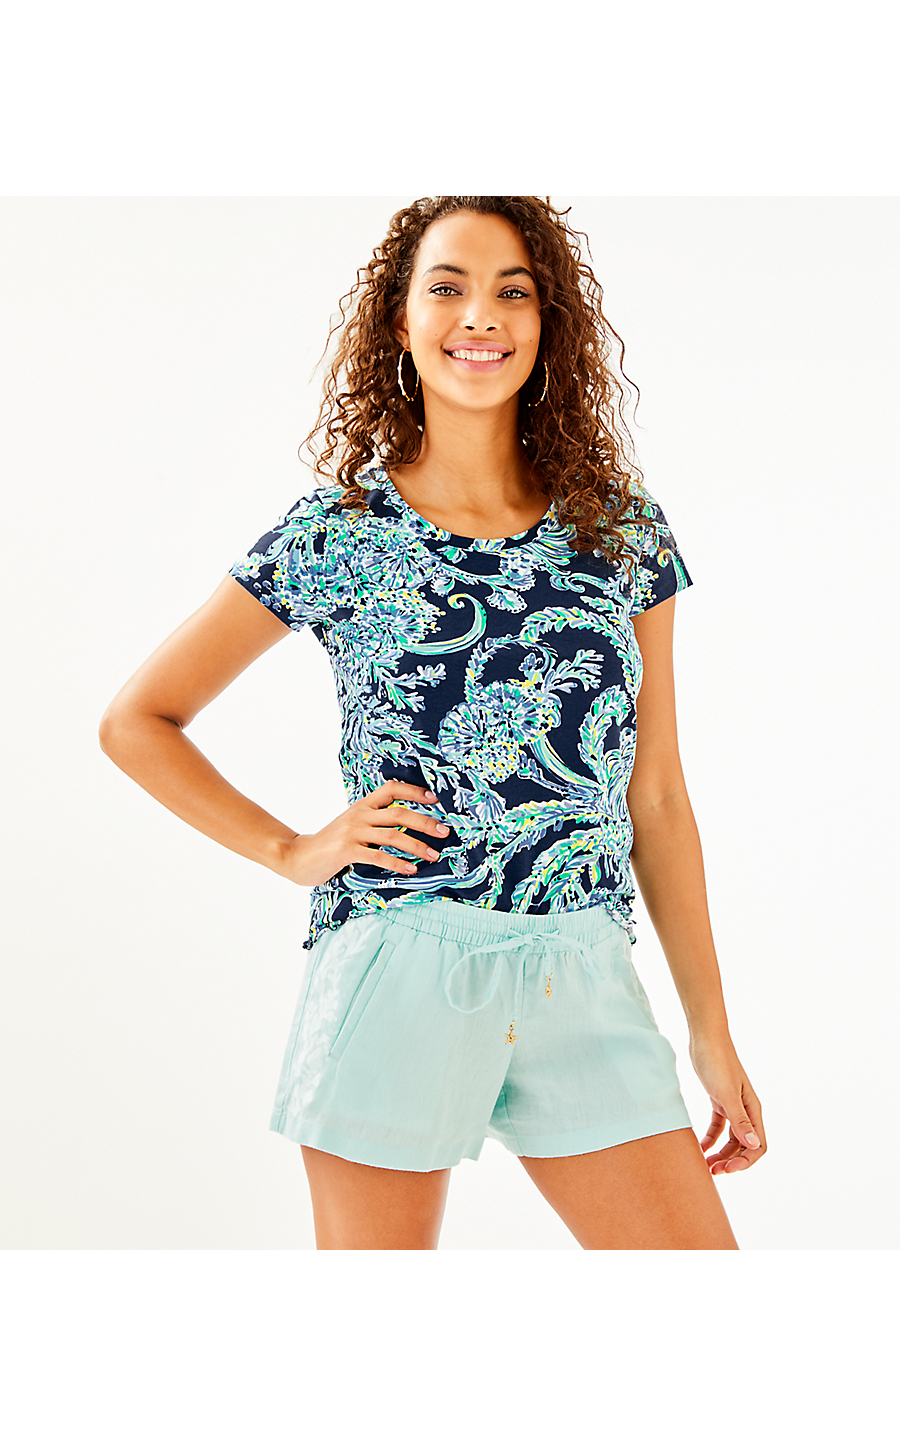 4227f124b BAYBREEZE SHORT - WHISPER BLUE - Lilly Pulitzer Store - Life's a Beach